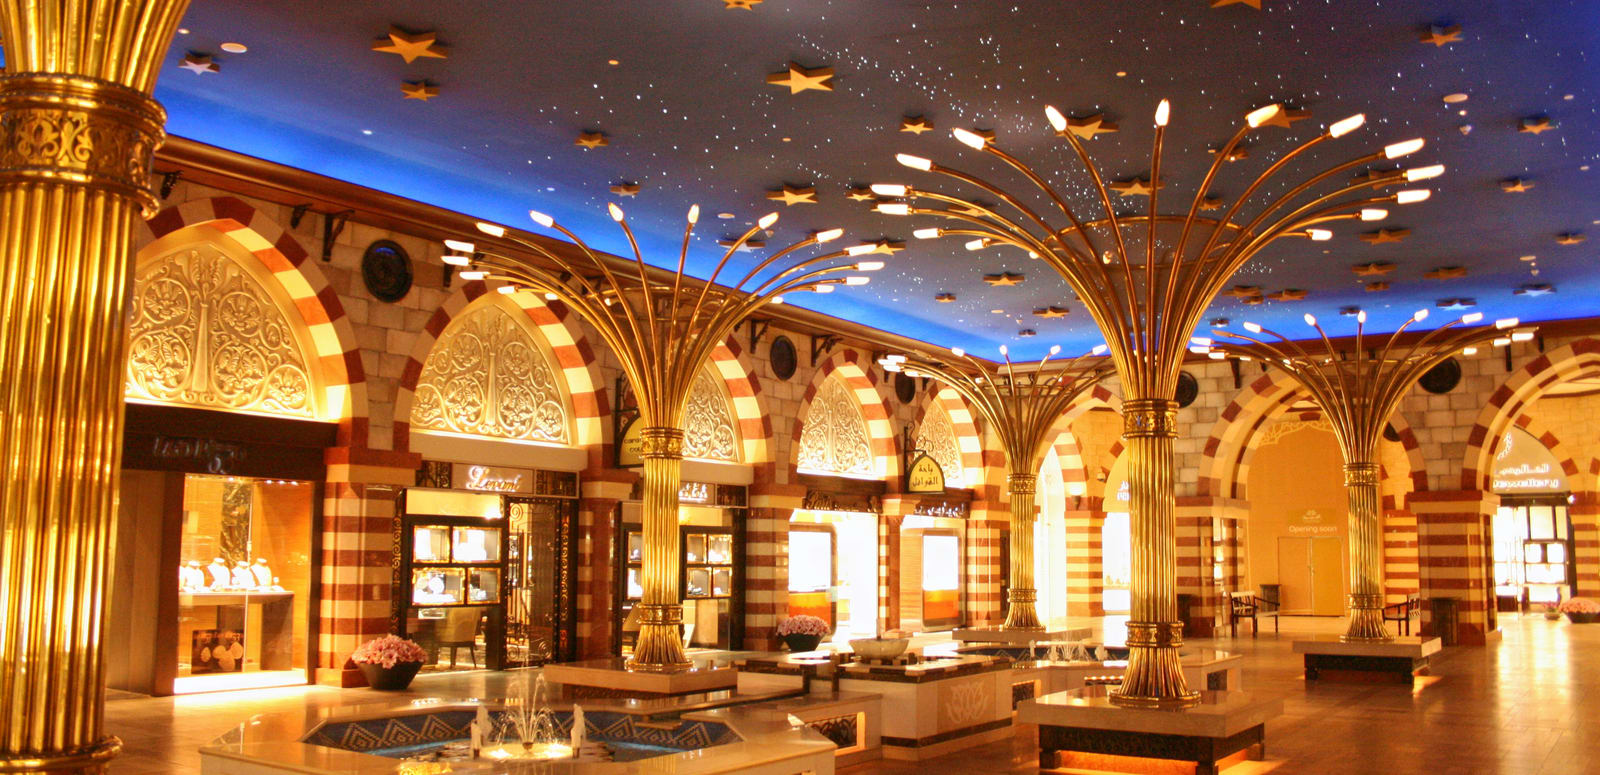 30 Best Places For Shopping In Dubai 2019 4400 Reviews